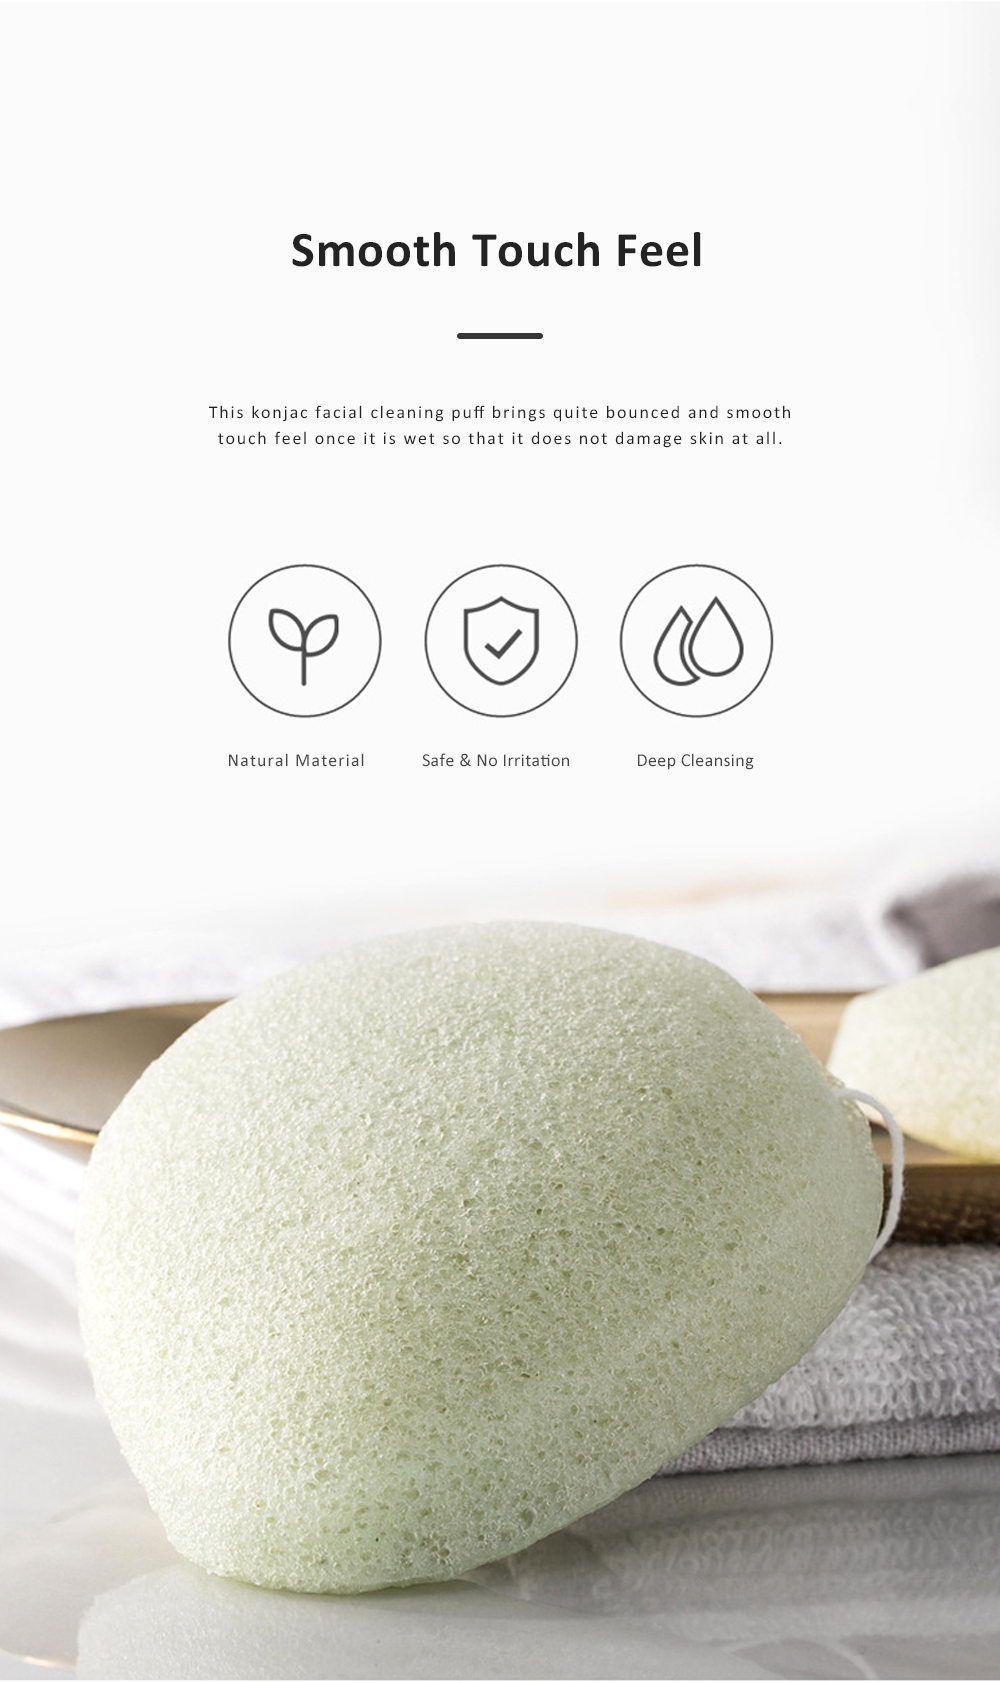 Jordan & Judy Konjac Sponge Facial Cleaning Puff for Face Deep Cleaning Facial Puff Konjac Facial Clean Buffer Sponge 1